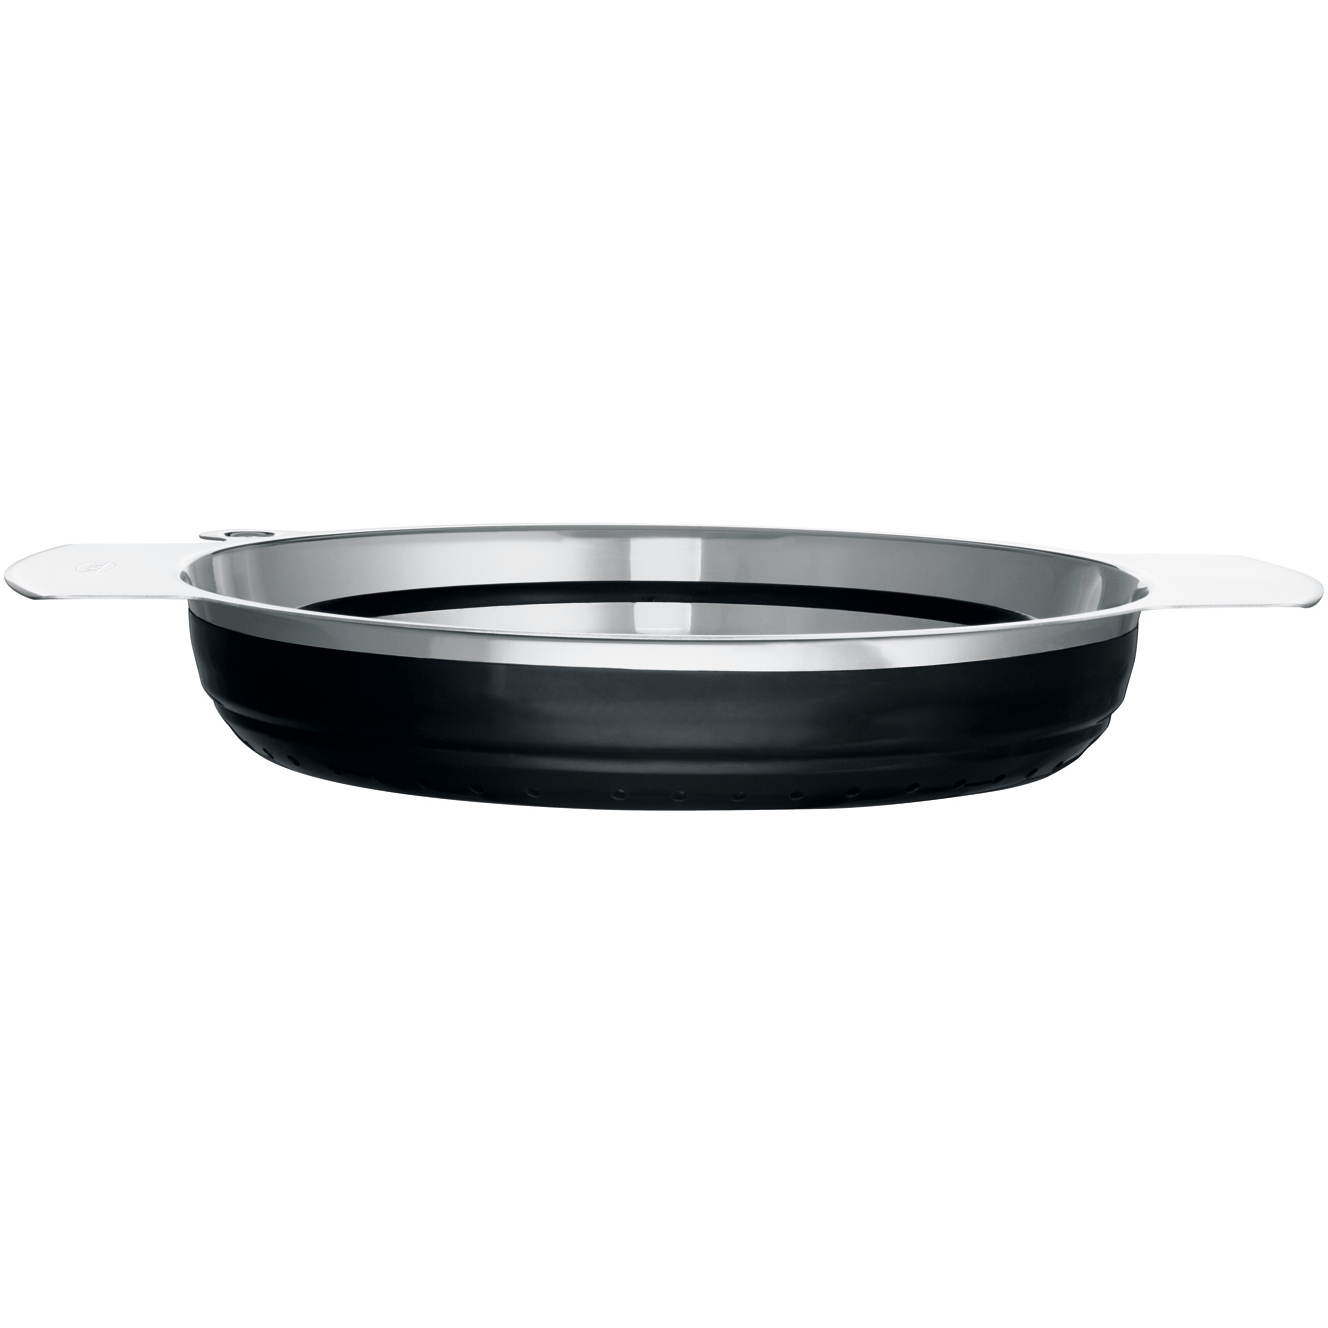 Rosle Black Silicone Collapsible Colander, 9.4 Inch